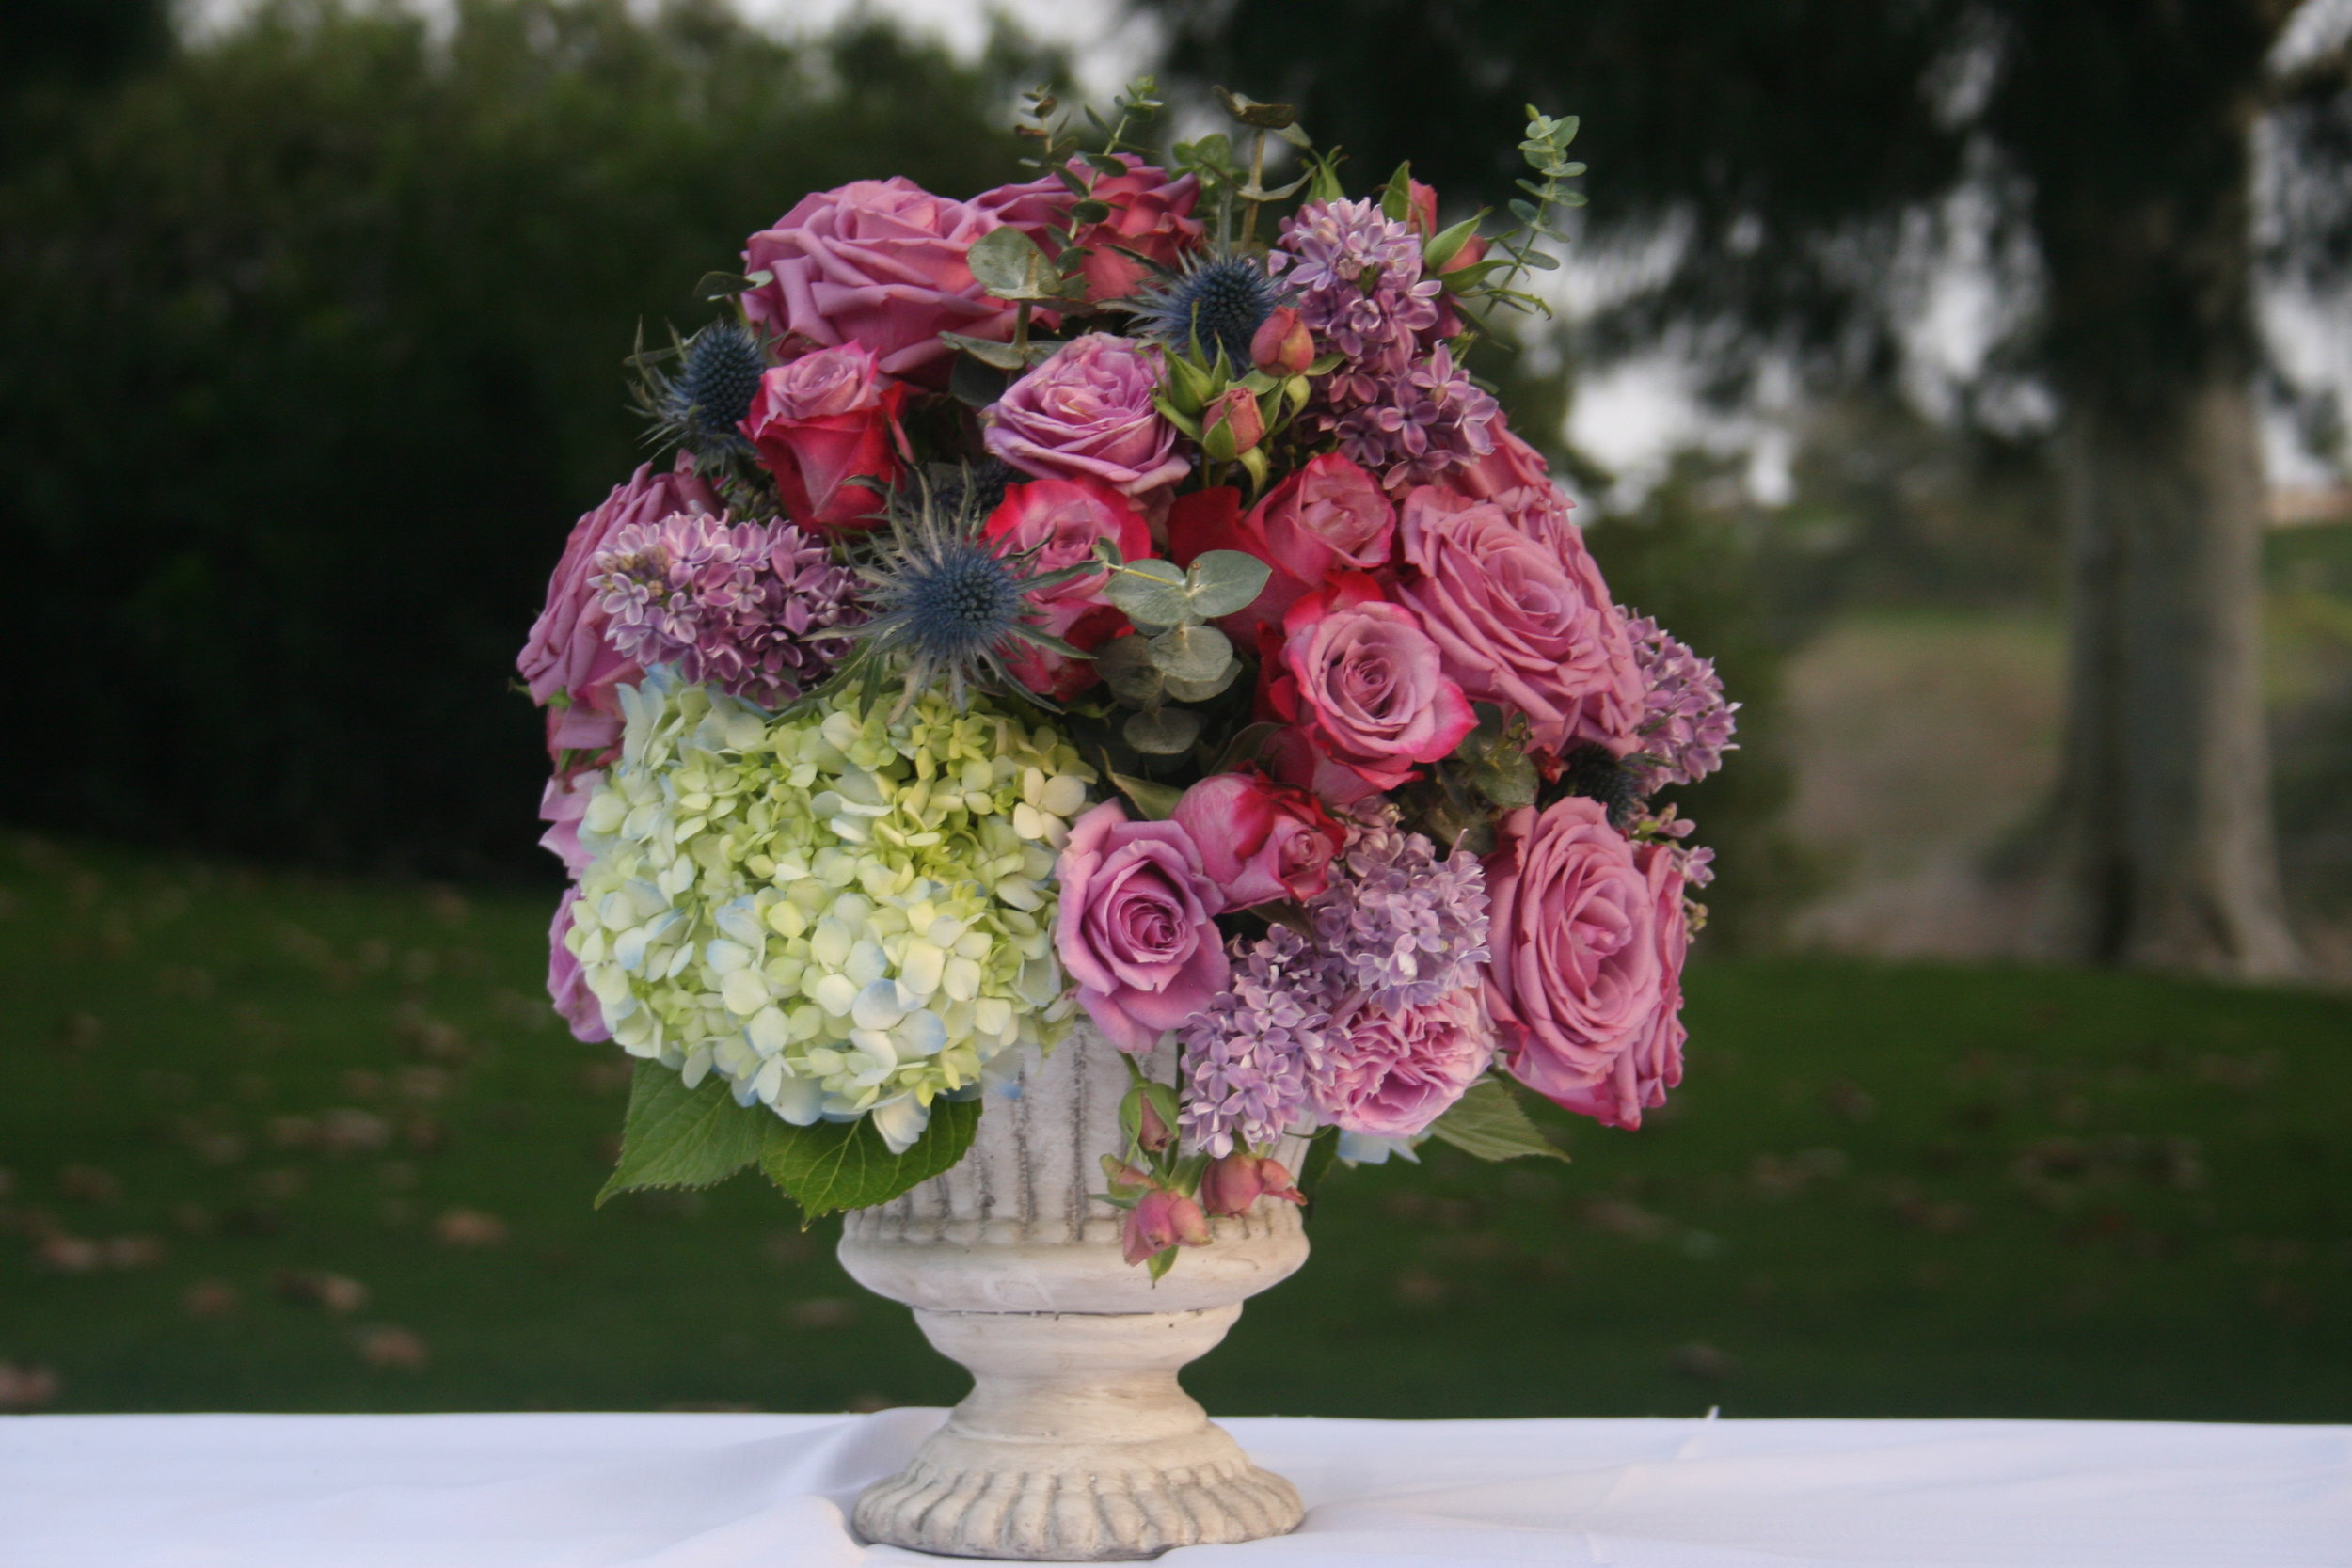 Roses, Hydrangea, Lilac, Thistle and Eucalyptus